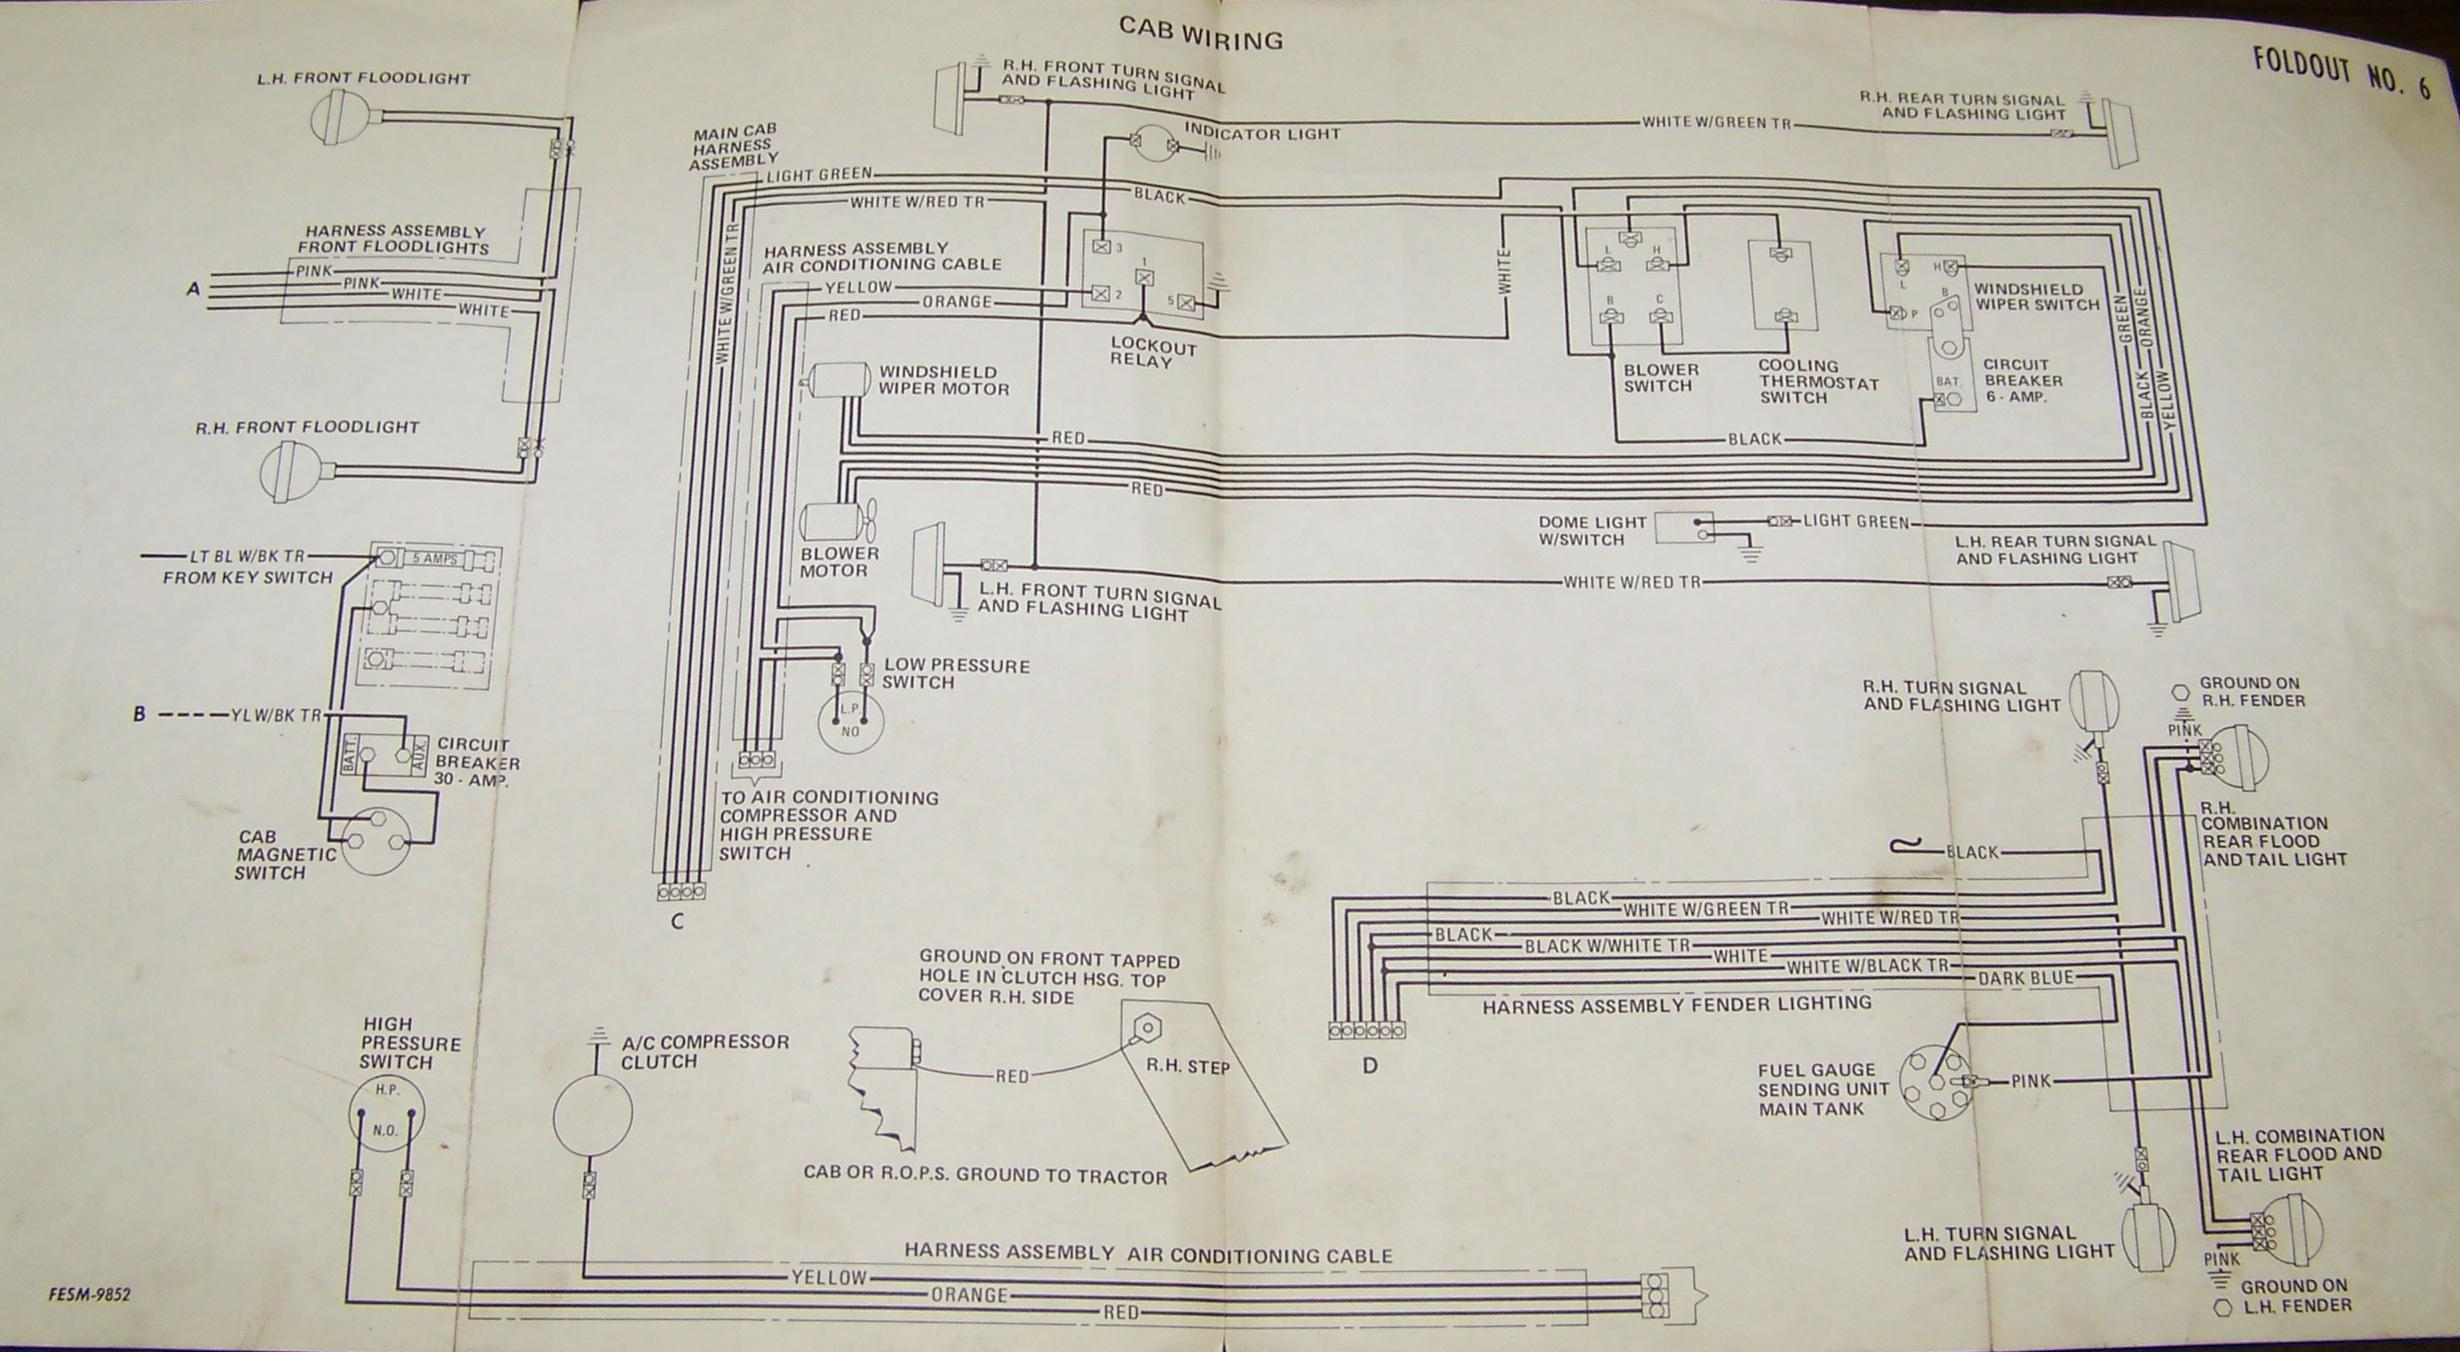 86series6 international motor diagrams ge electric motor wiring diagram 856 international wiring harness at bayanpartner.co